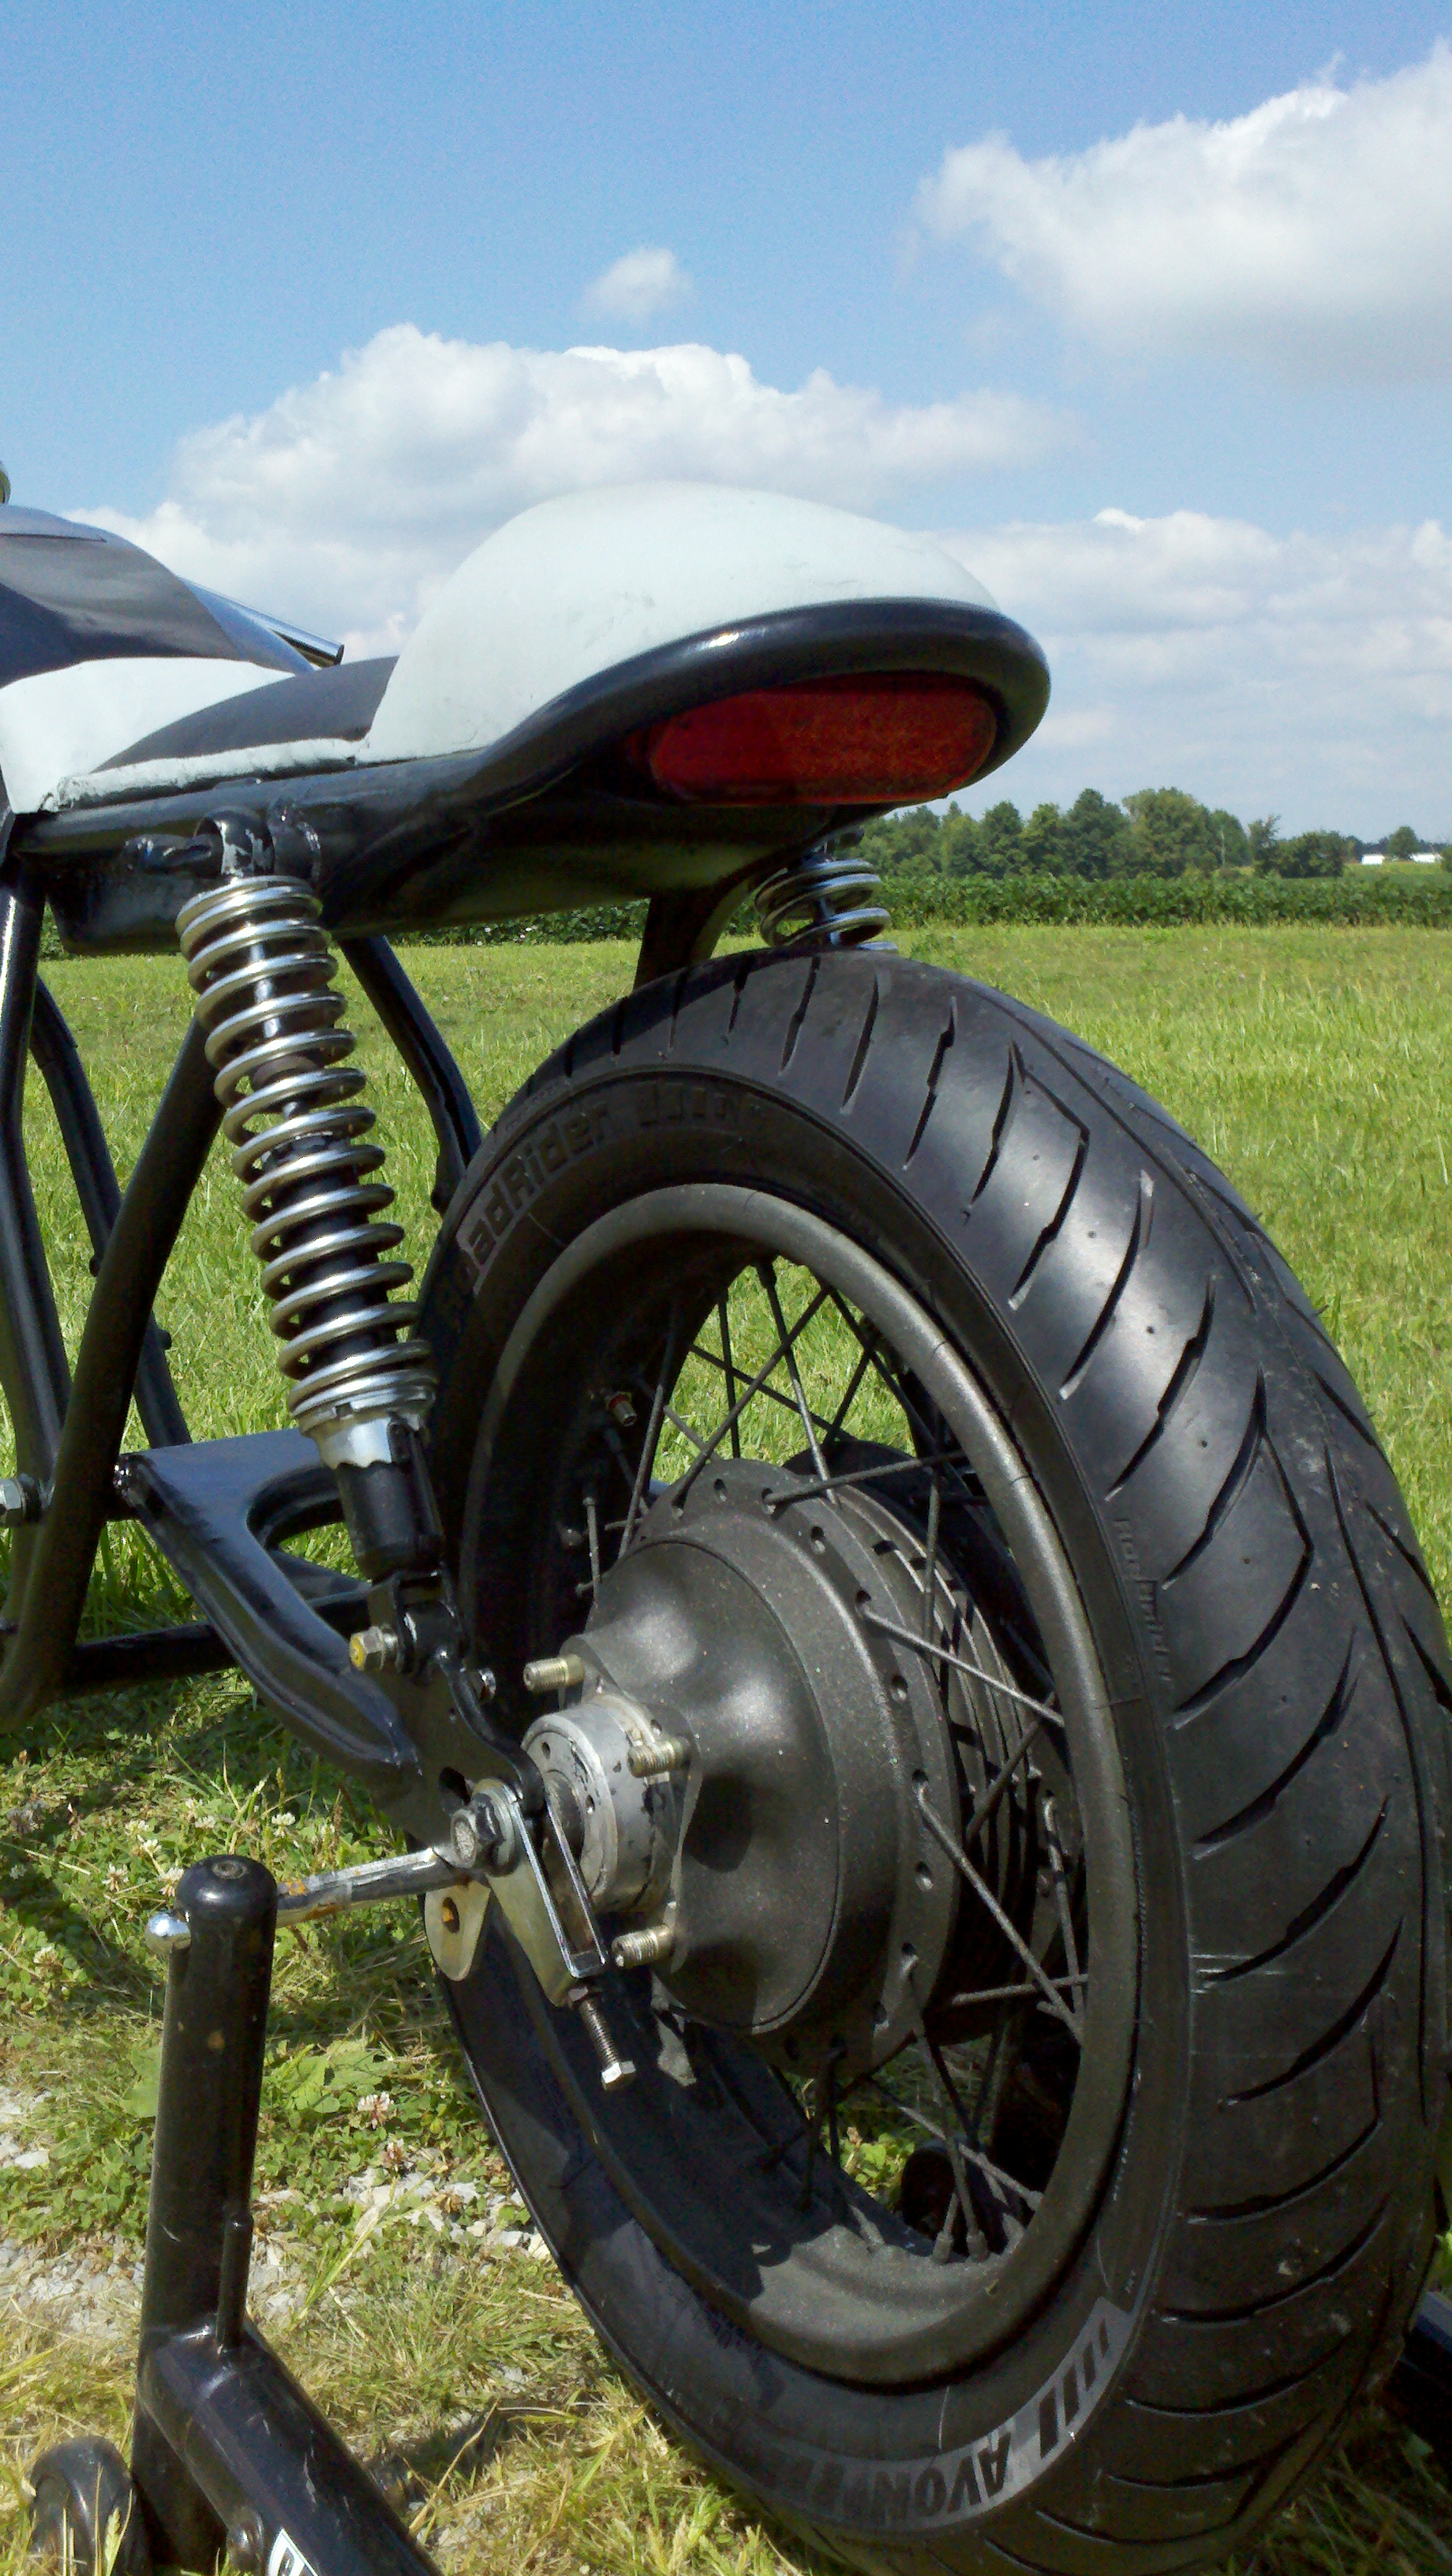 Honda Cb750 Cafe Racer Project Designed4racing